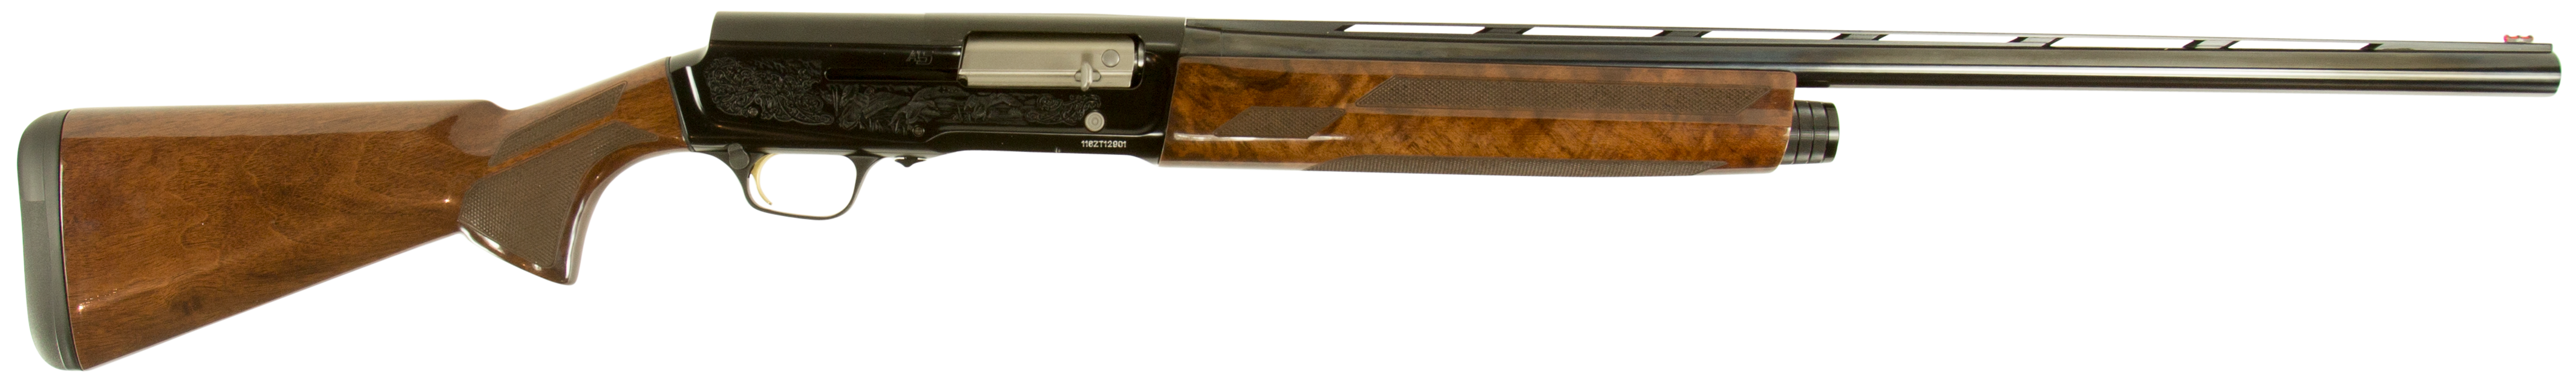 Browning A5 Hunter High Grade Semi-Auto Shotgun 3'' 12 Gauge 28'' Aluminum Alloy - Turkish Walnut